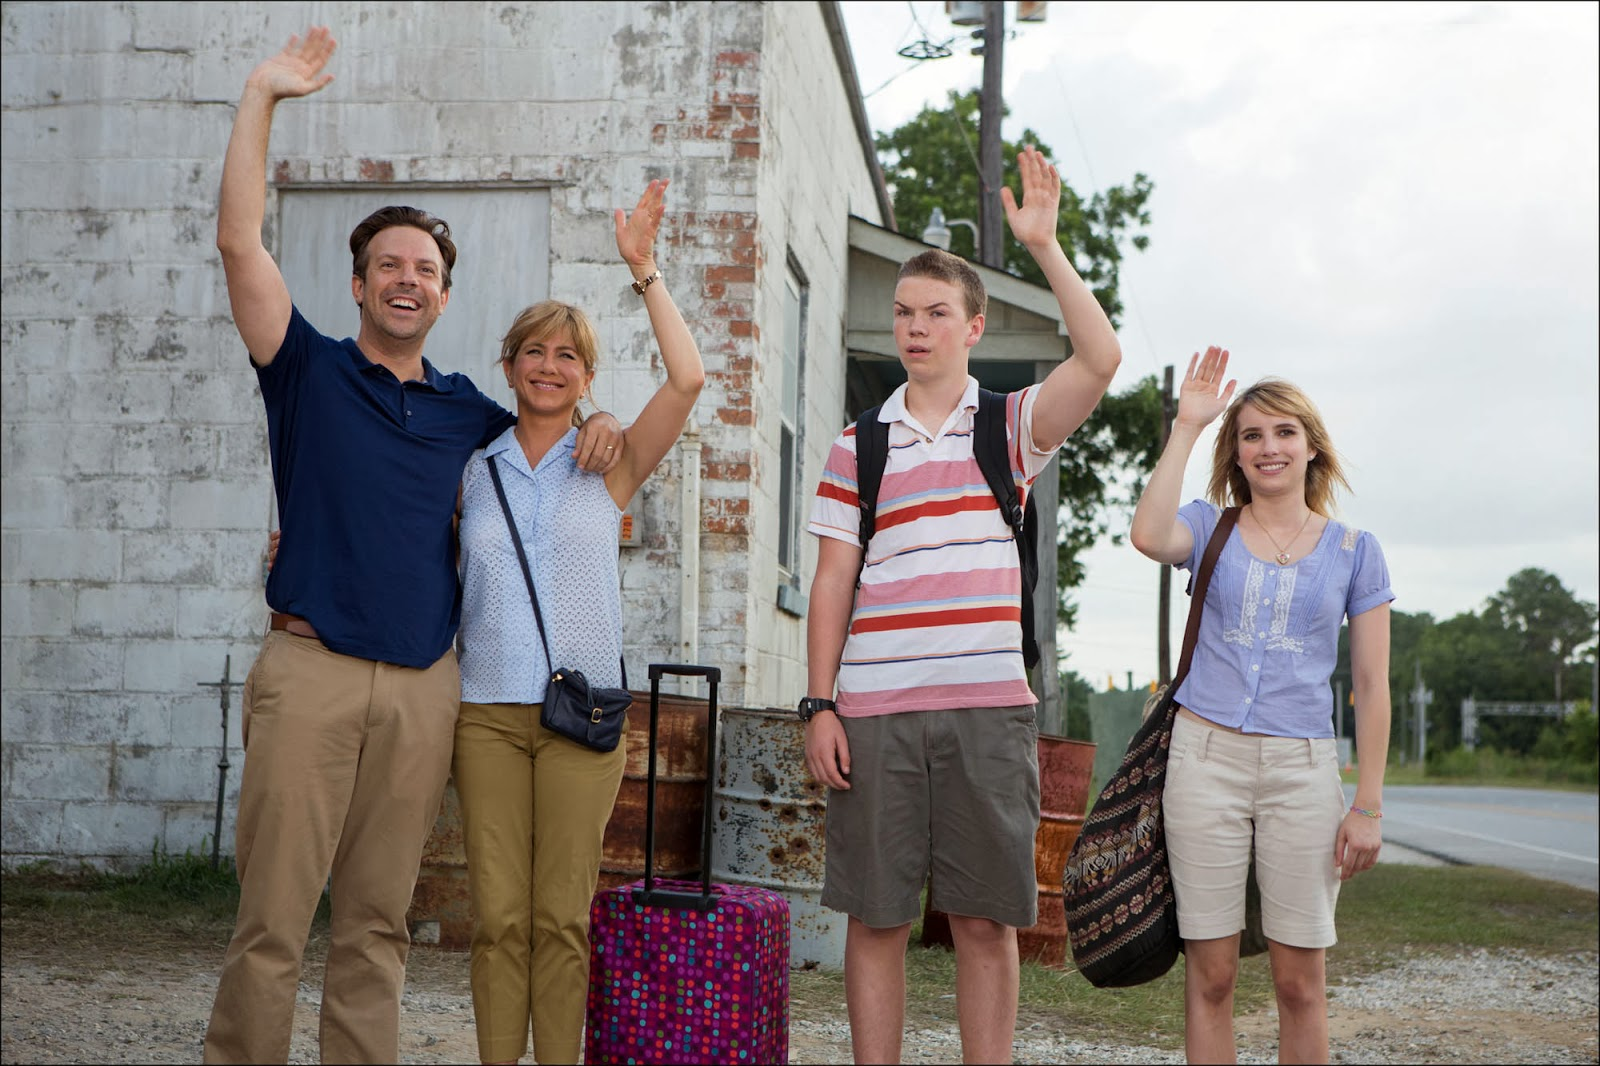 Family photo from We're the Millers.